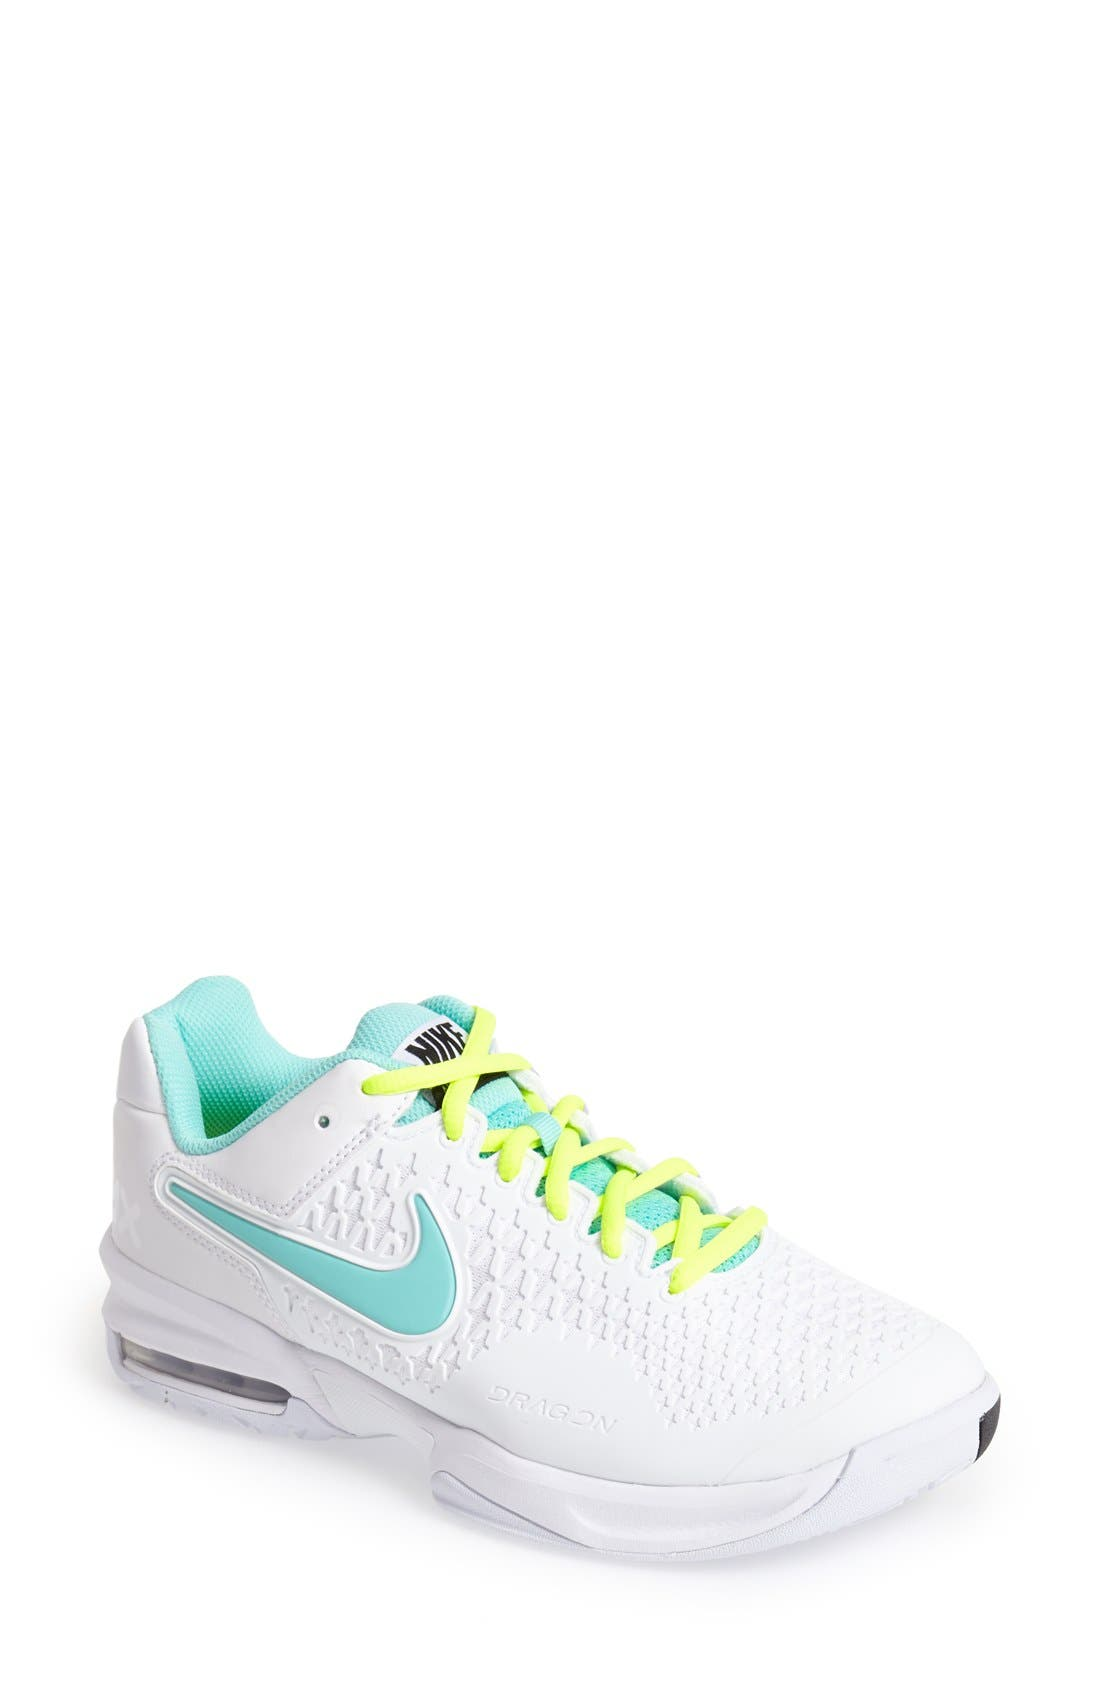 Main Image - Nike 'Air Max Cage' Tennis Shoe (Women) (Regular Retail Price: $115.00)